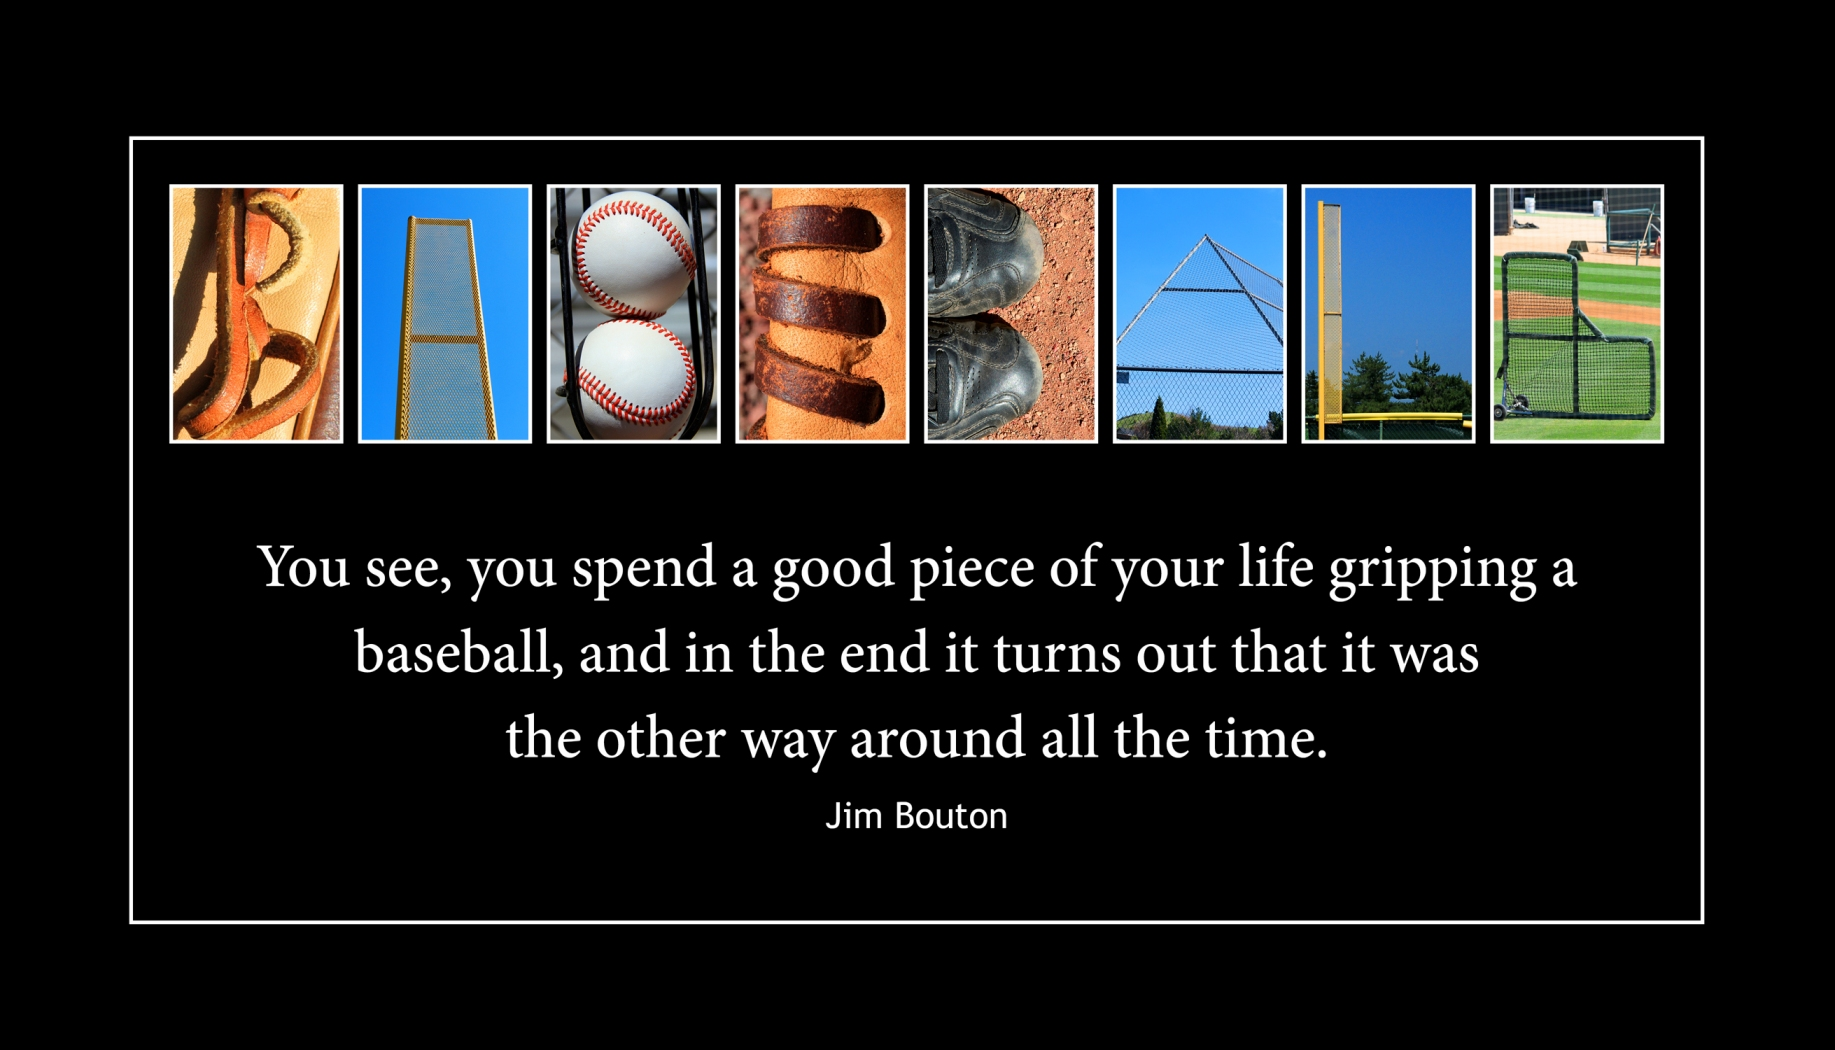 BASEBALL Wood Plaque<br>Baseball Letter Art<br>Jim Bouton Quote